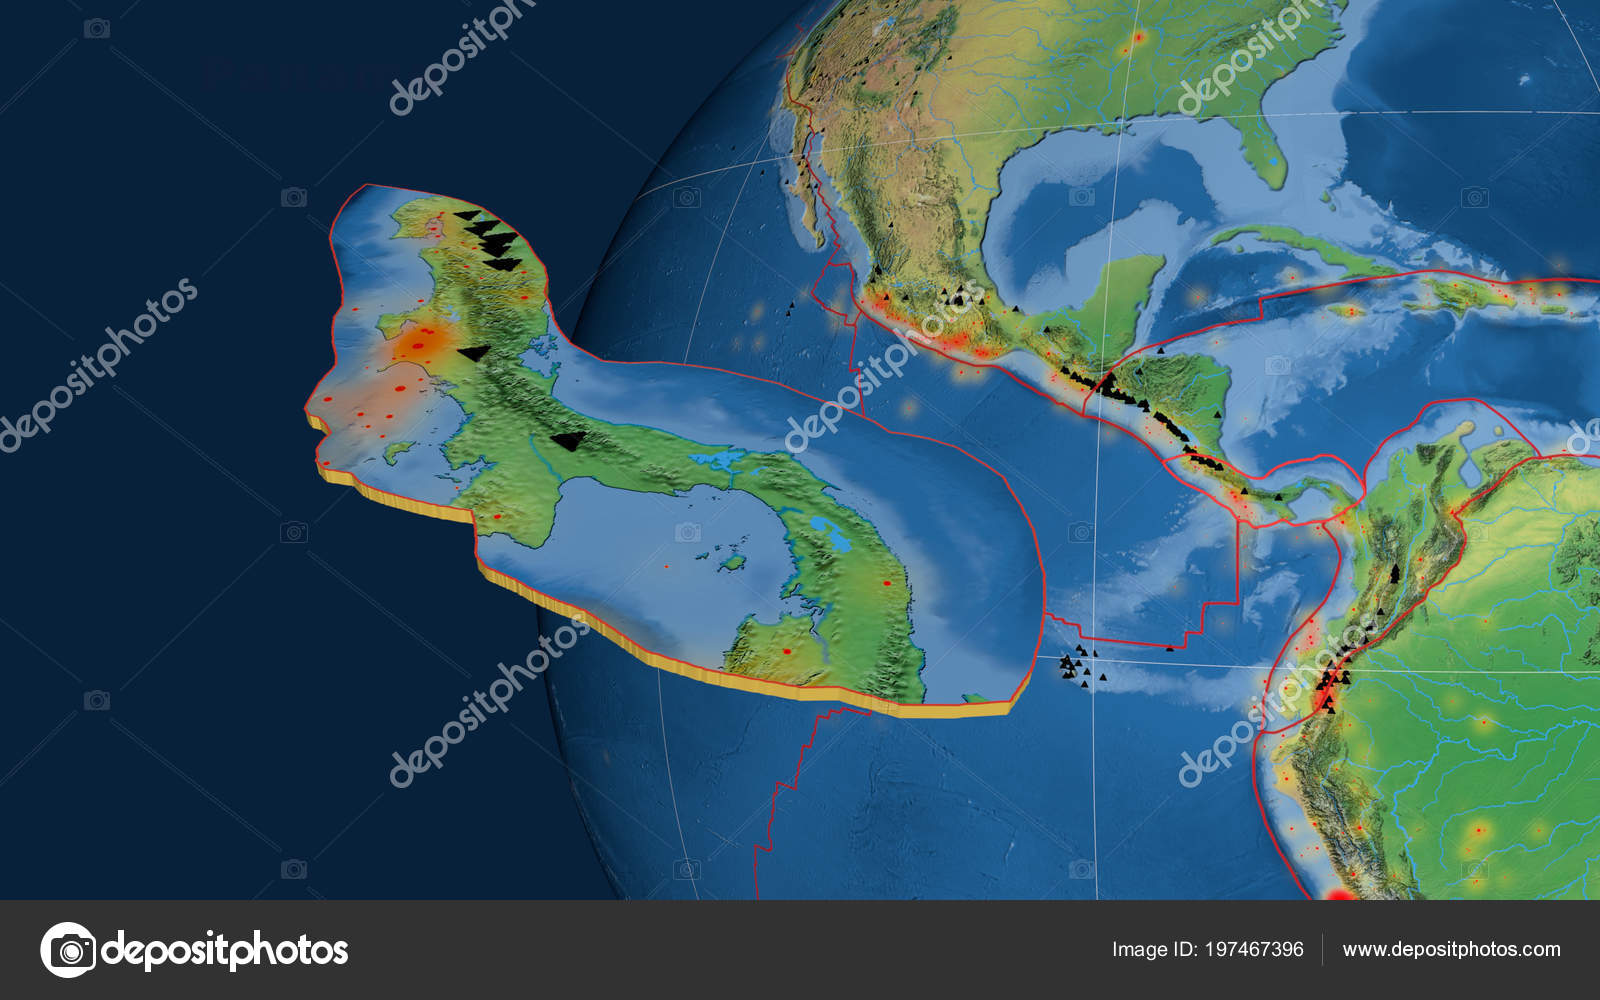 Topographic Map Of Panama.Panama Tectonic Plate Extruded Presented Globe Natural Earth